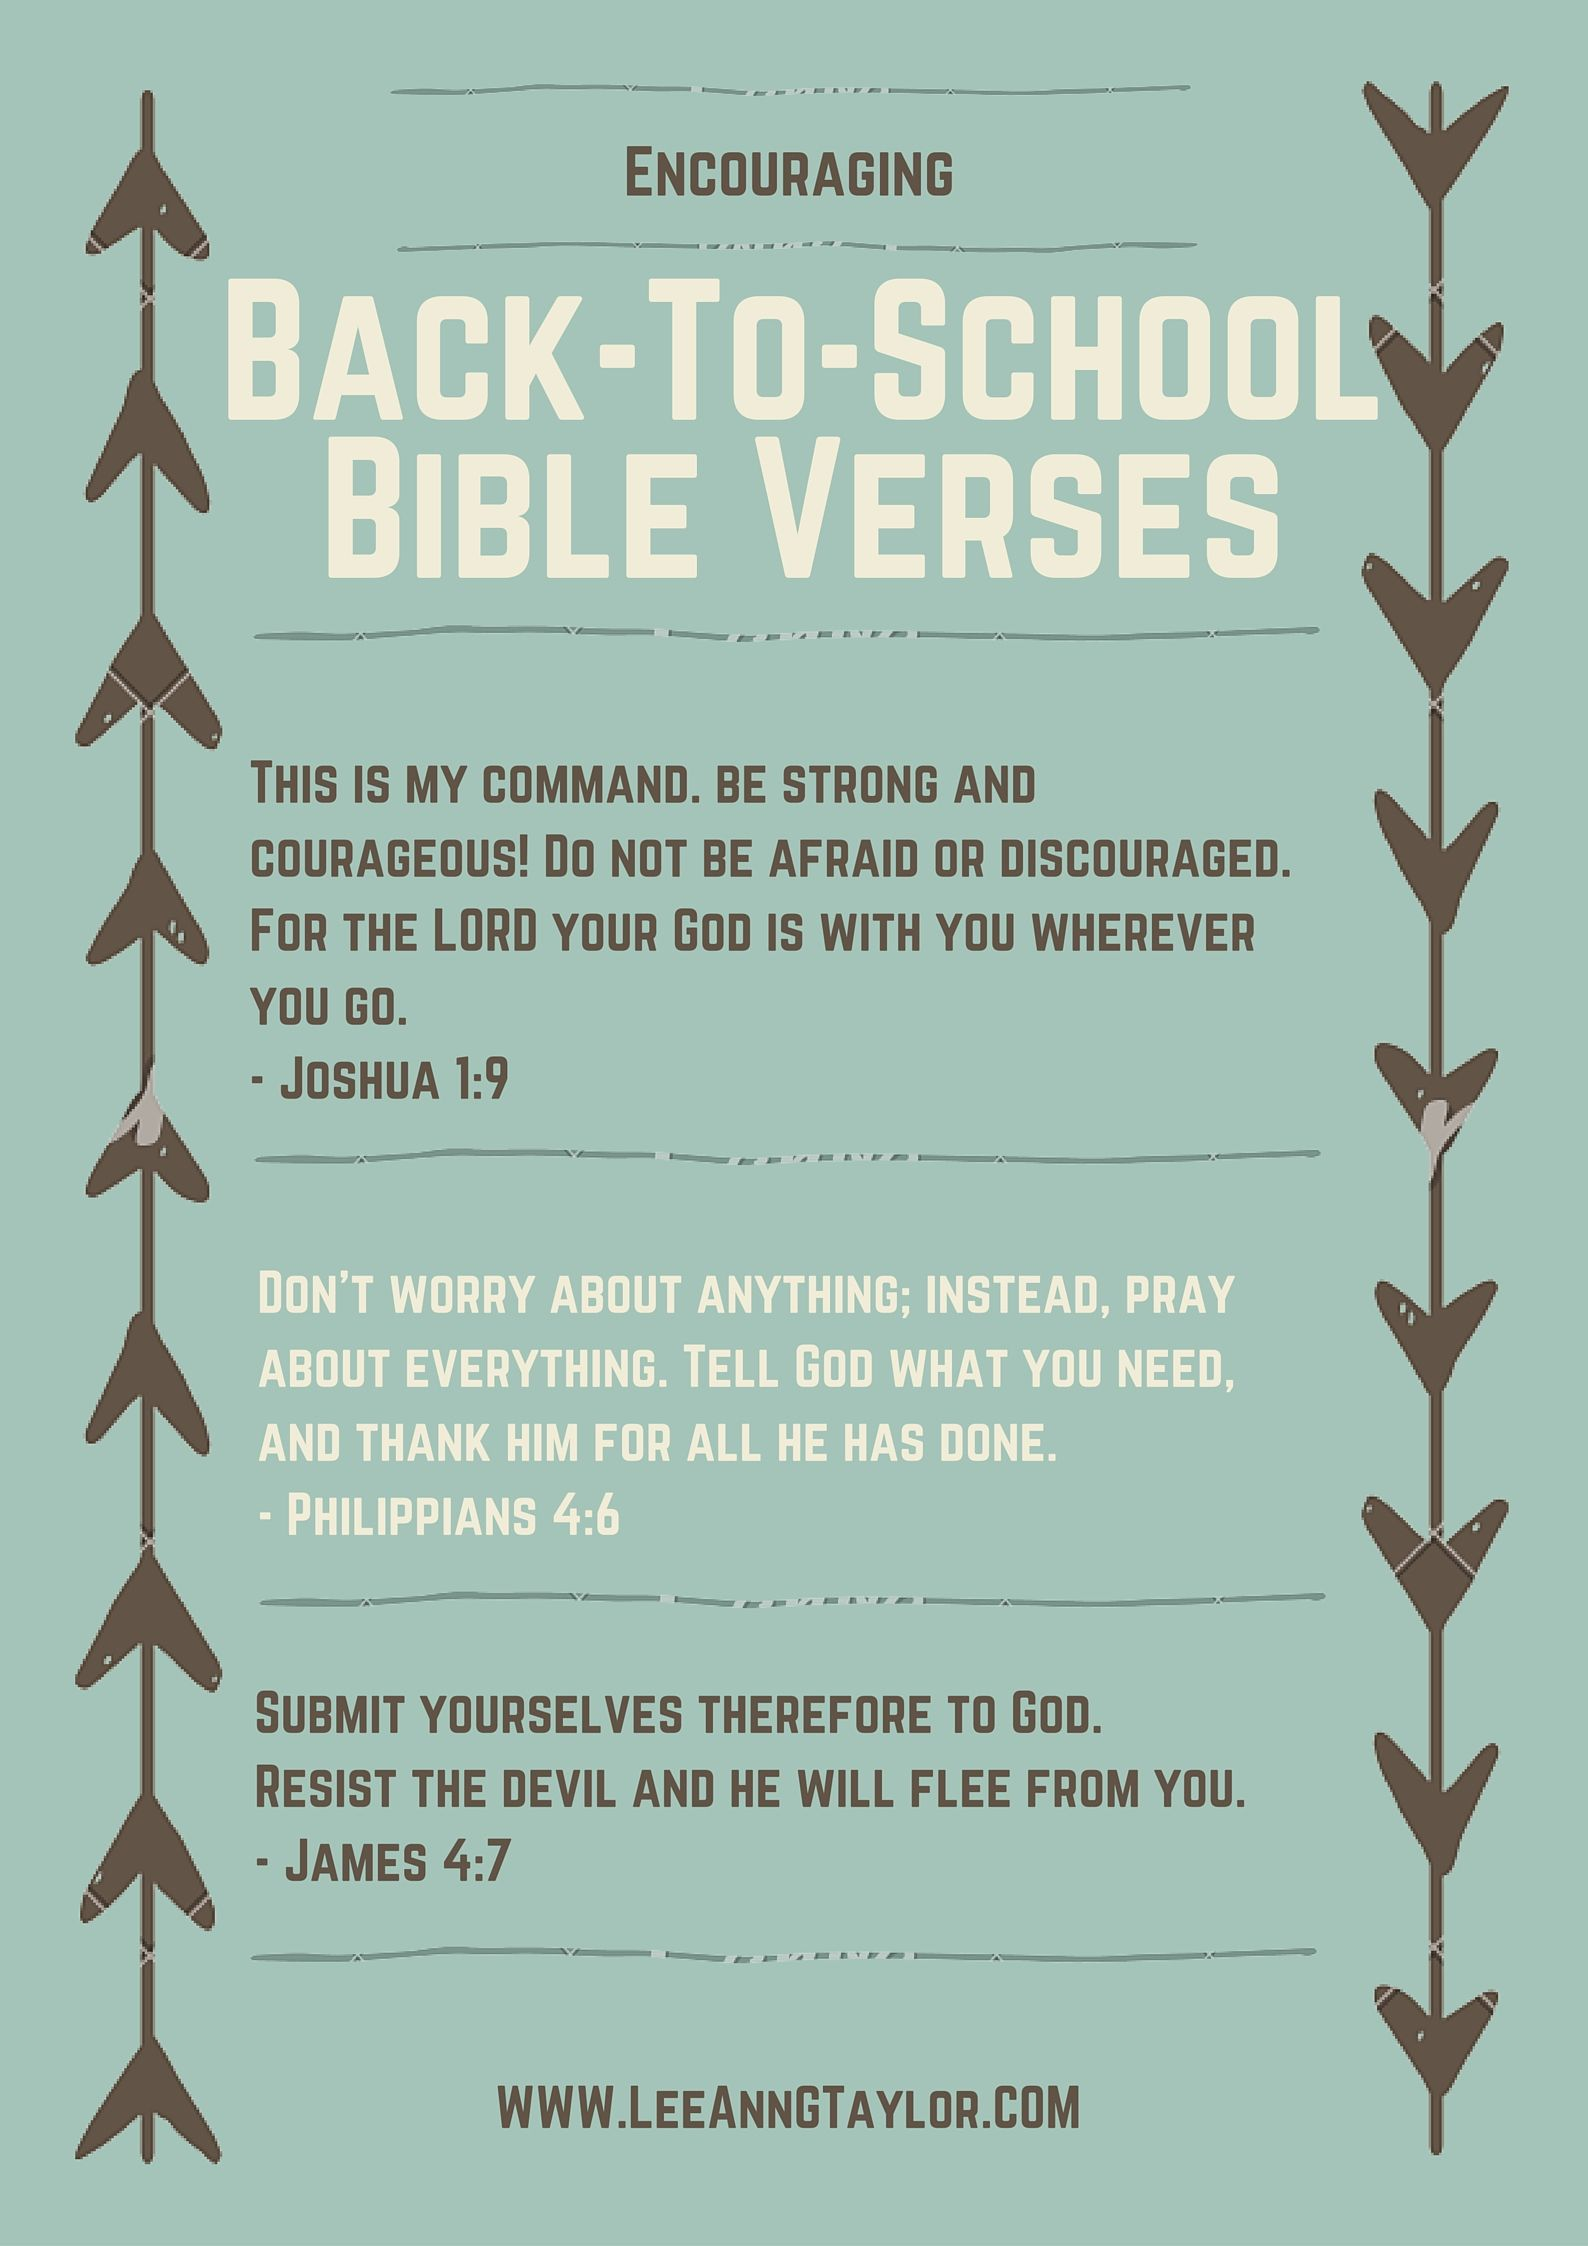 Phantasy Se Verses Are Super Uplifting Towards College Back To School Bible Verses Printable Verses Family Bible Verses New Testament Family Bible Verses Unity